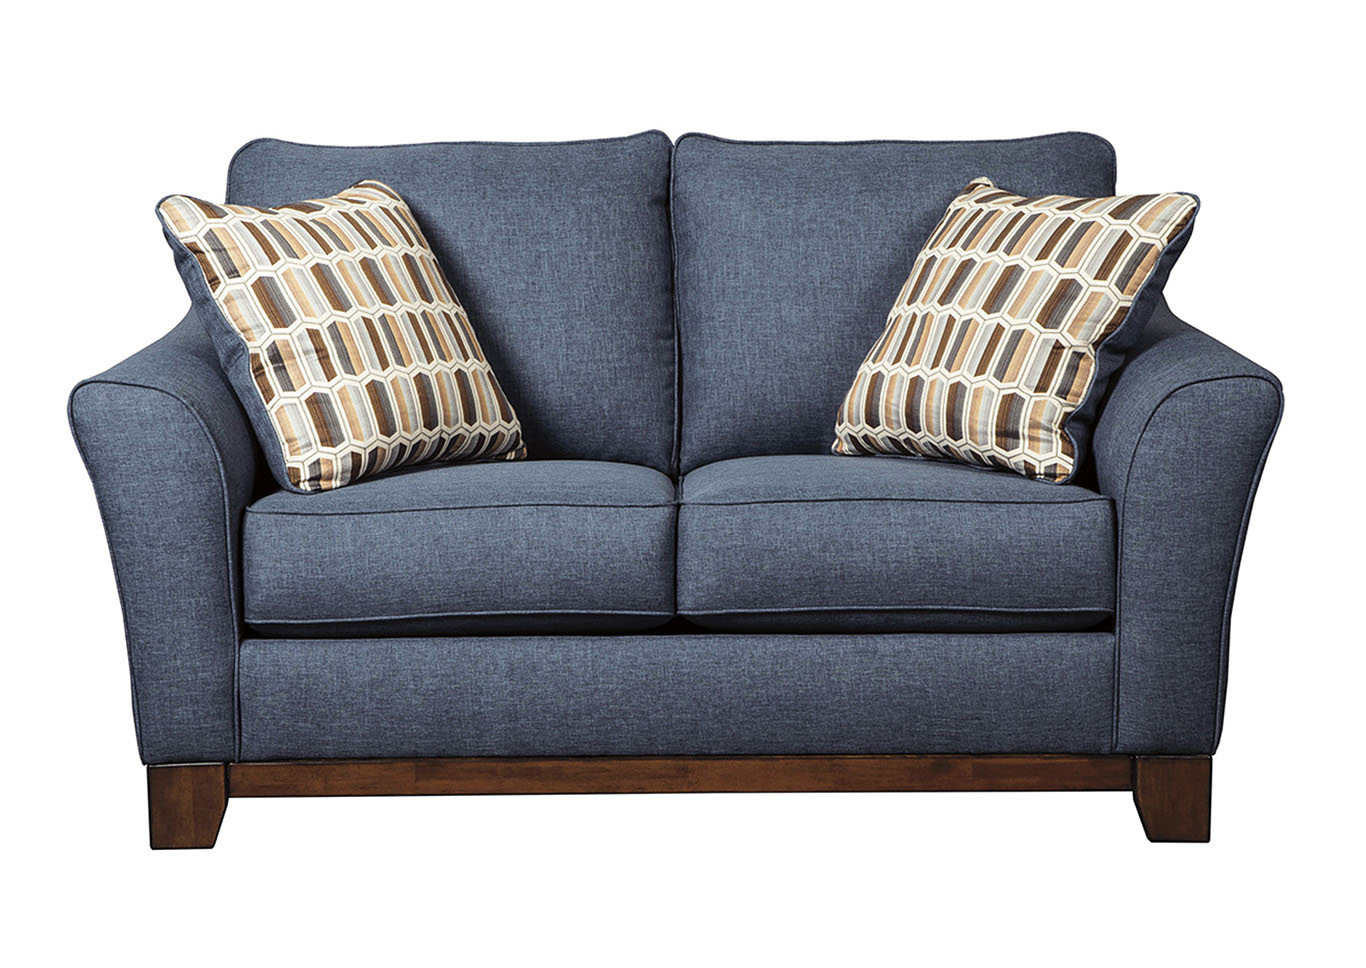 Ramos furniture janley denim loveseat Denim loveseat